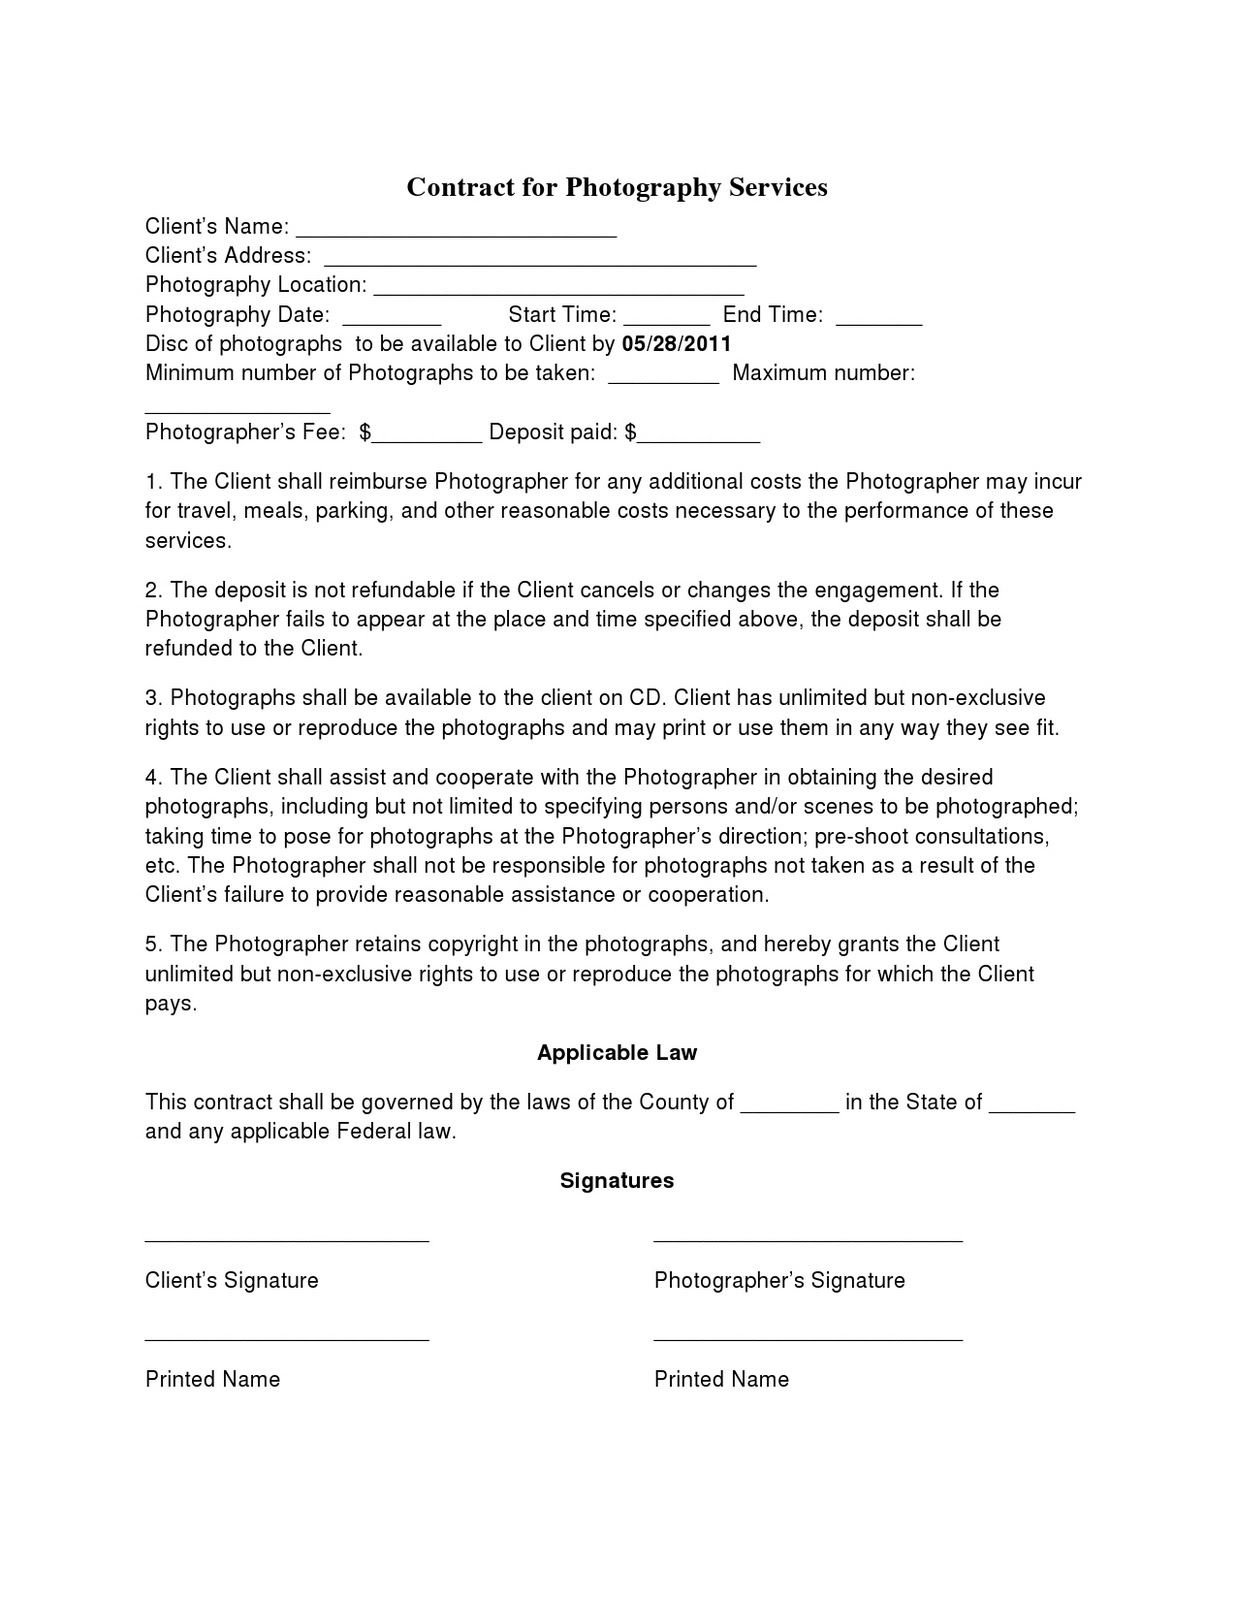 Basic Wedding Photography Contracts | Photography Contract ...